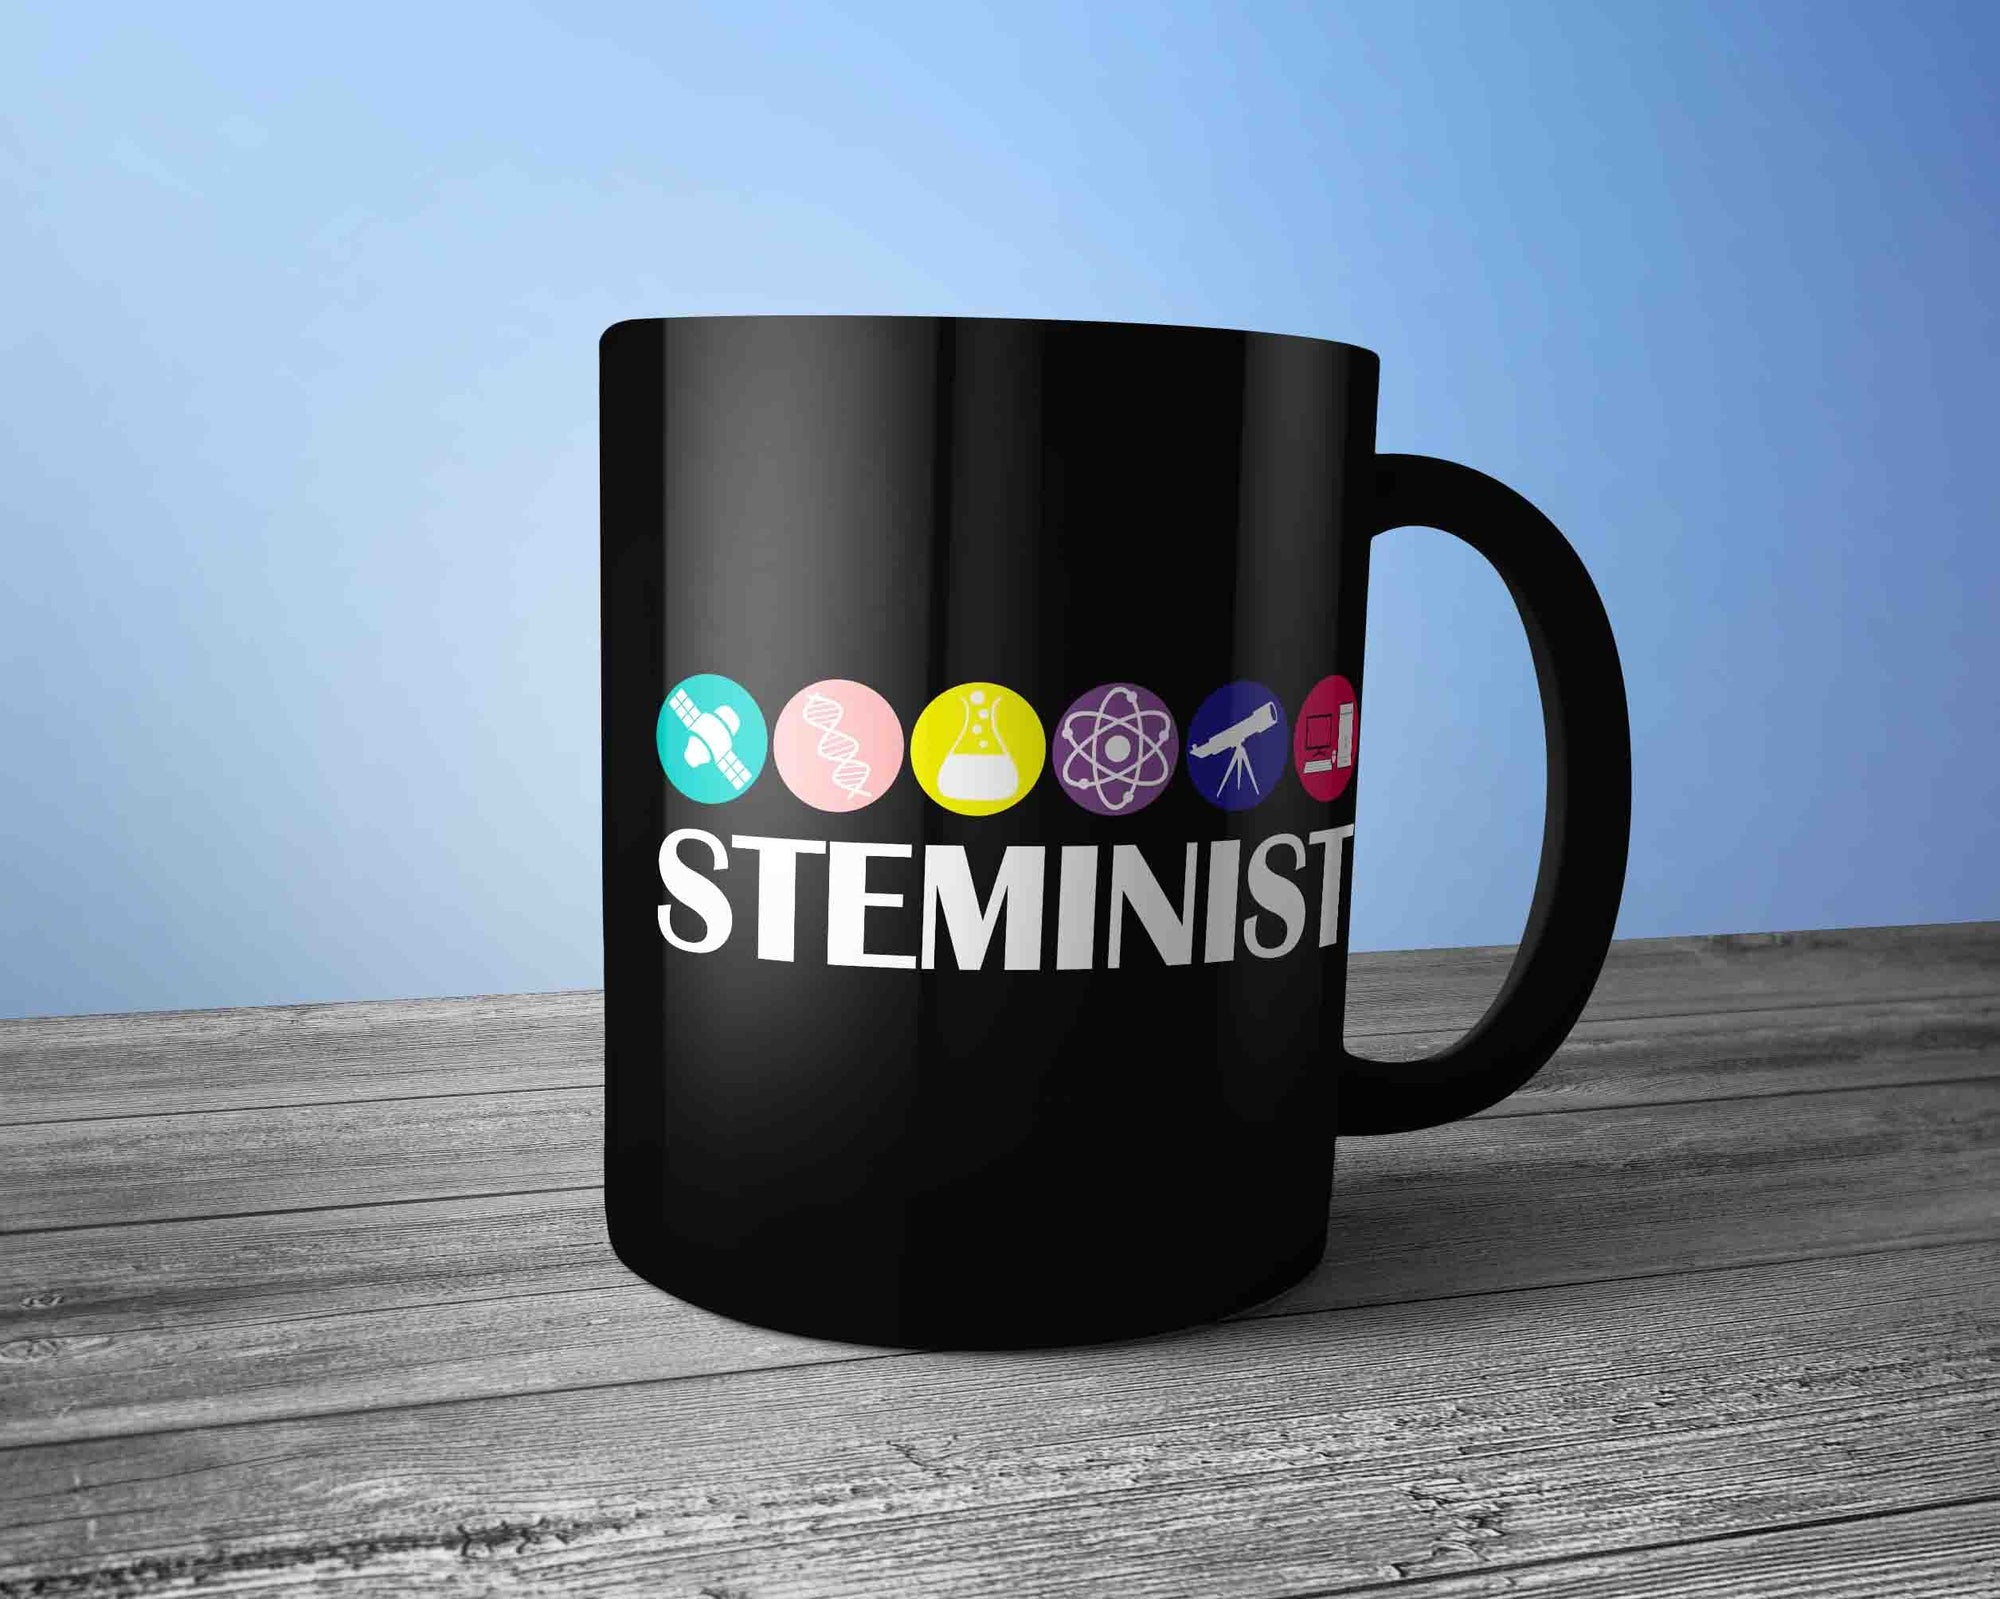 20d98d4c8035 Steminist Mug-Cool Gifts for Women Men in Stem Field - ChiliPrints